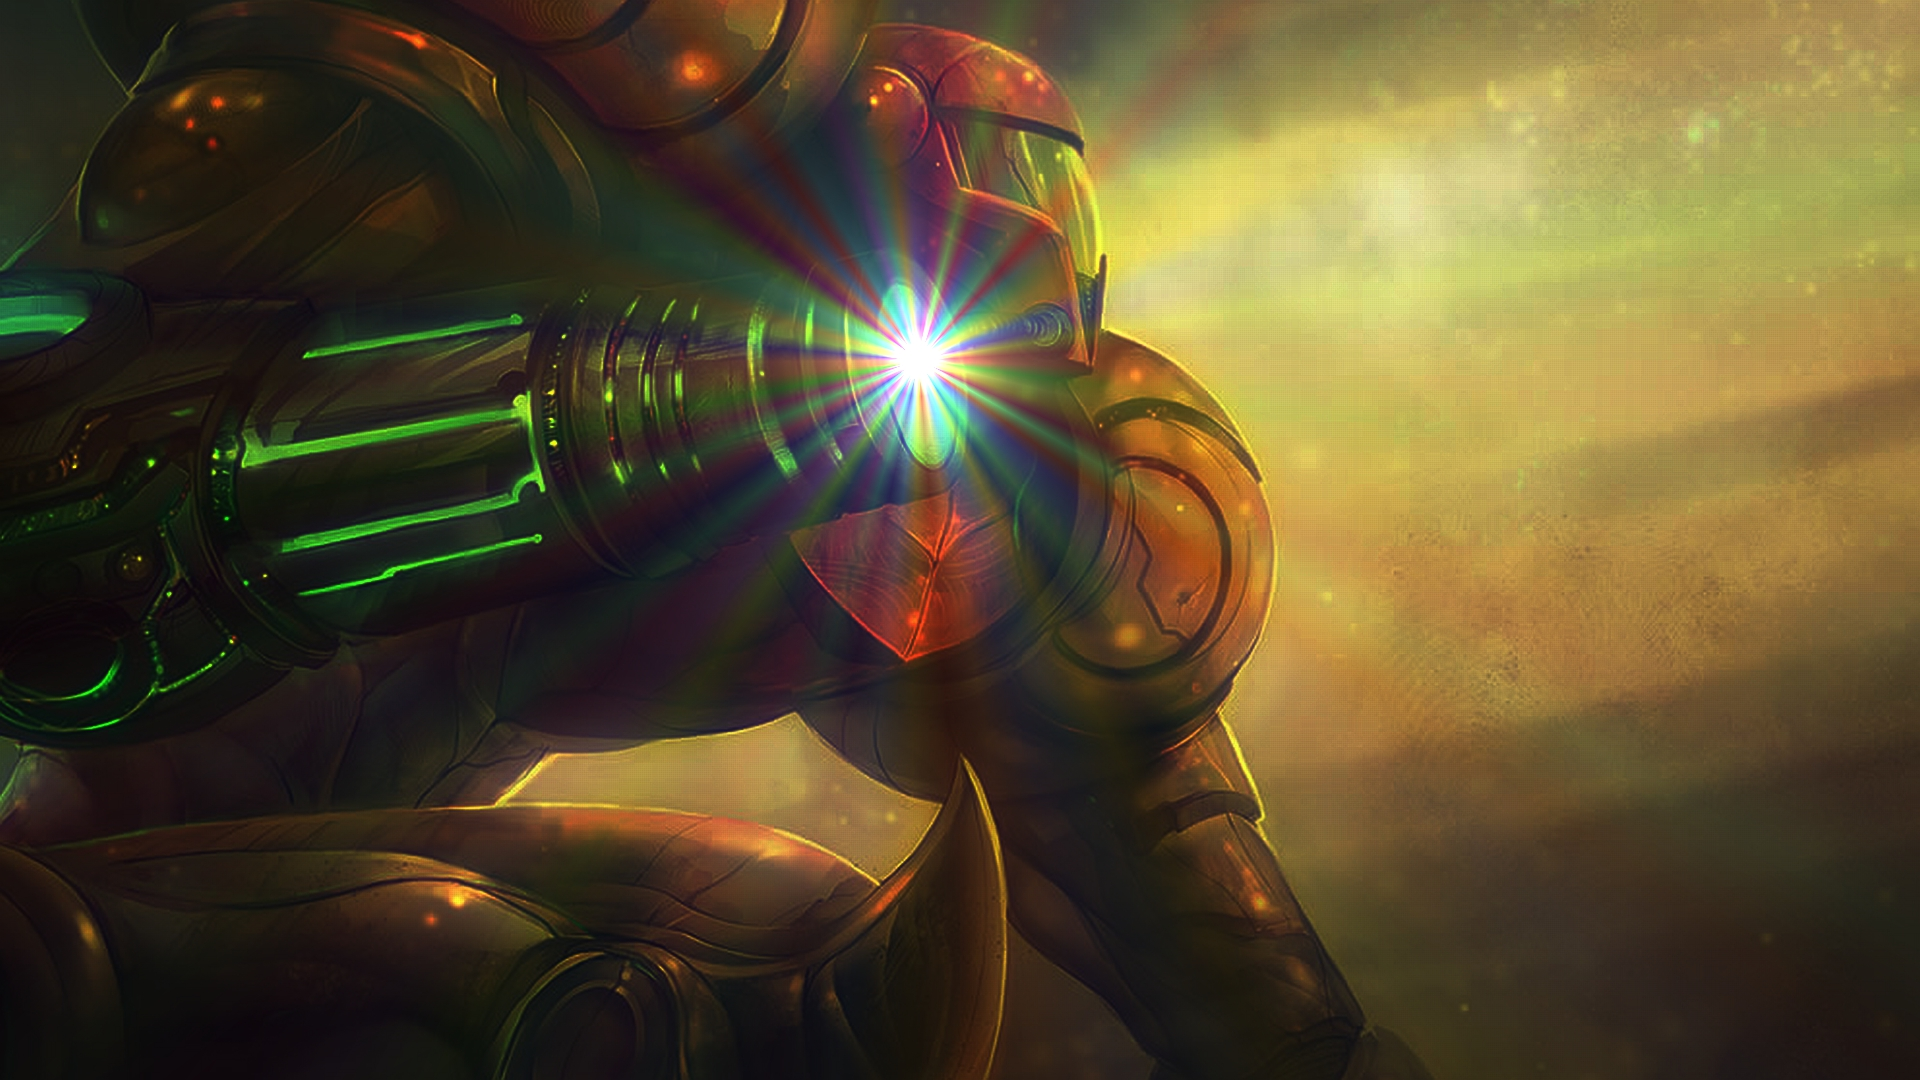 super metroid iphone 6 wallpaper